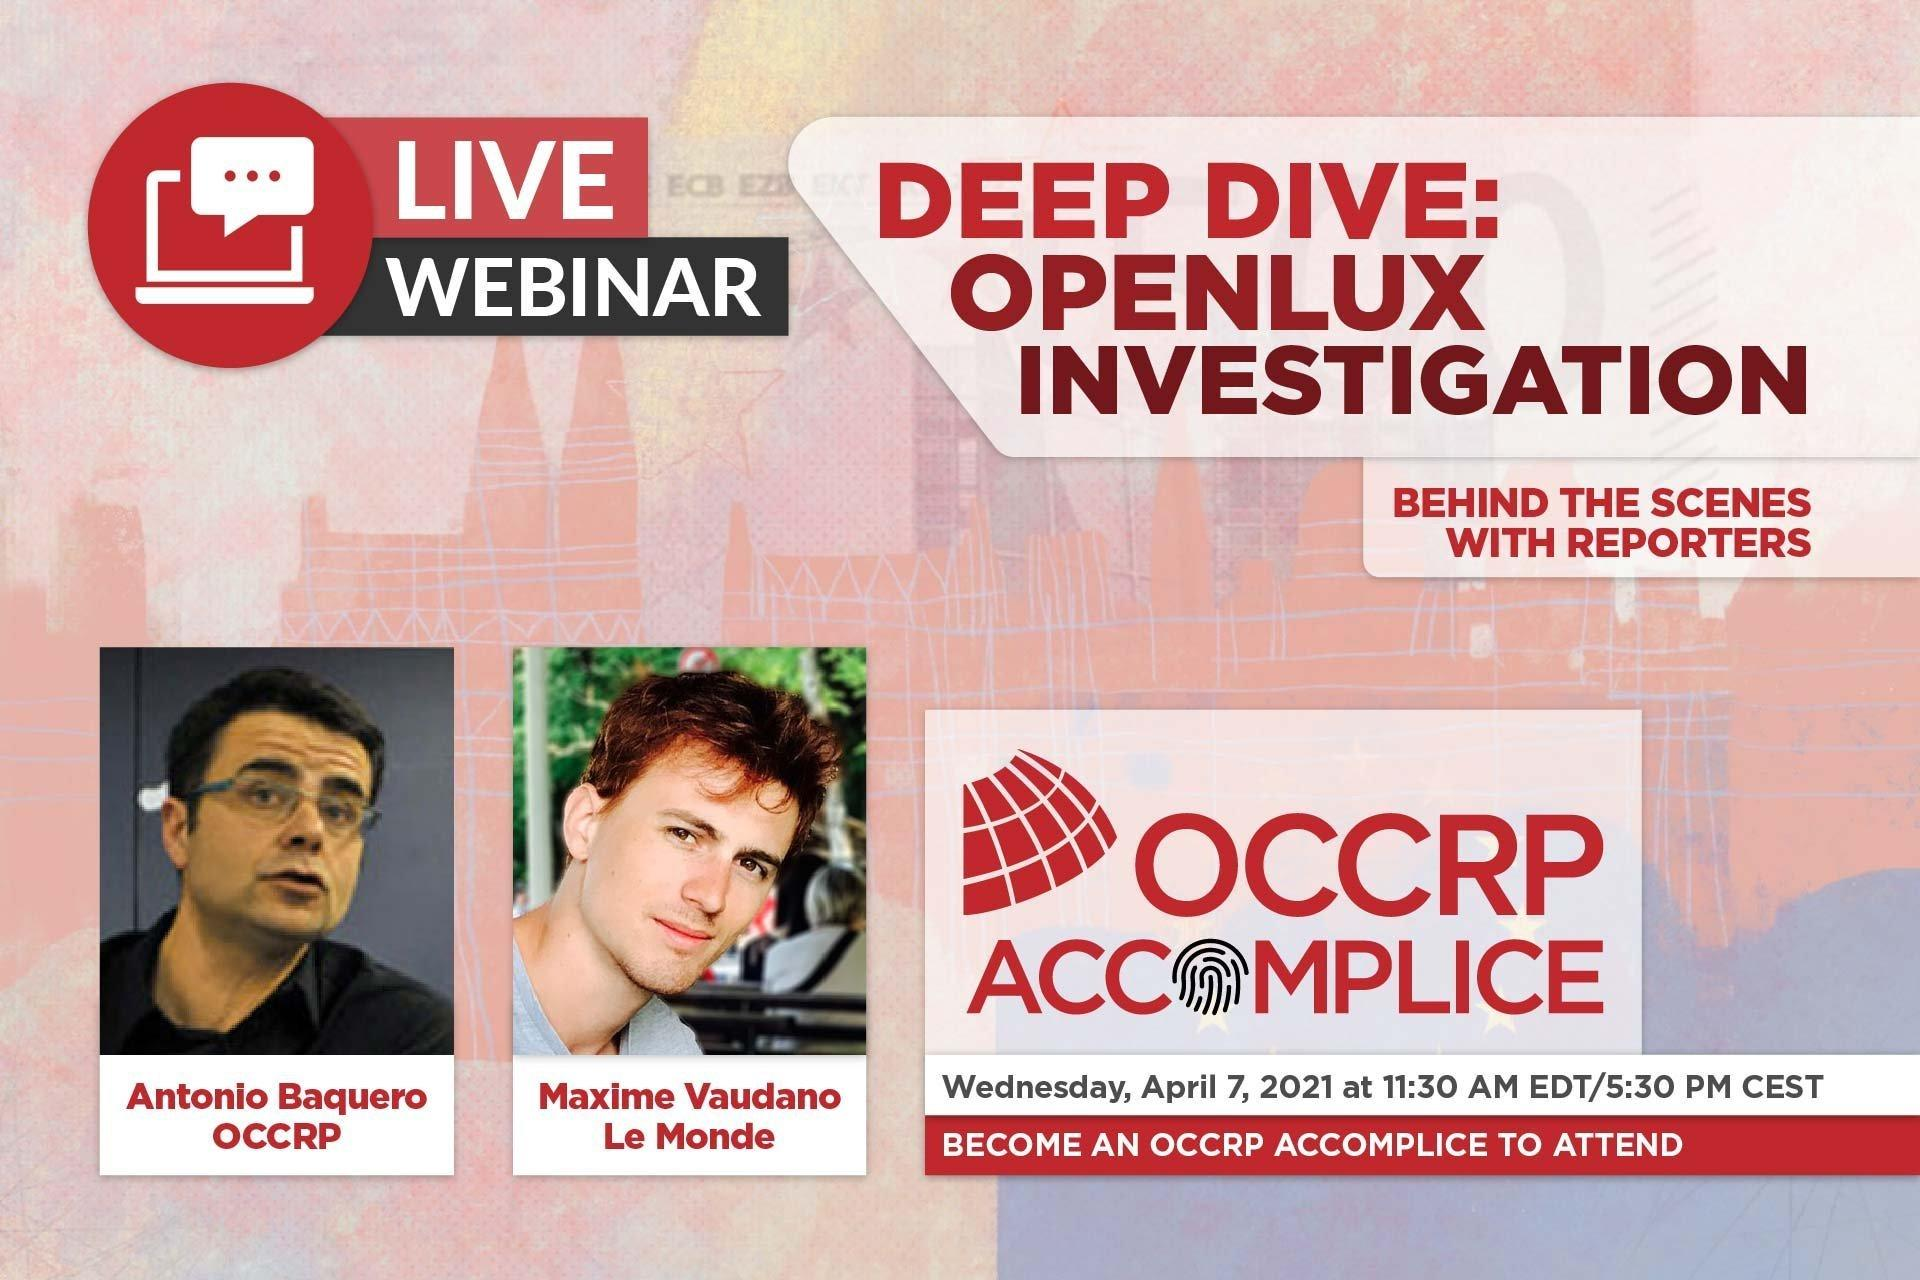 Go Behind the Scenes of our OpenLux Investigation With Journalists Antonio Baquero and Maxime Vaudano